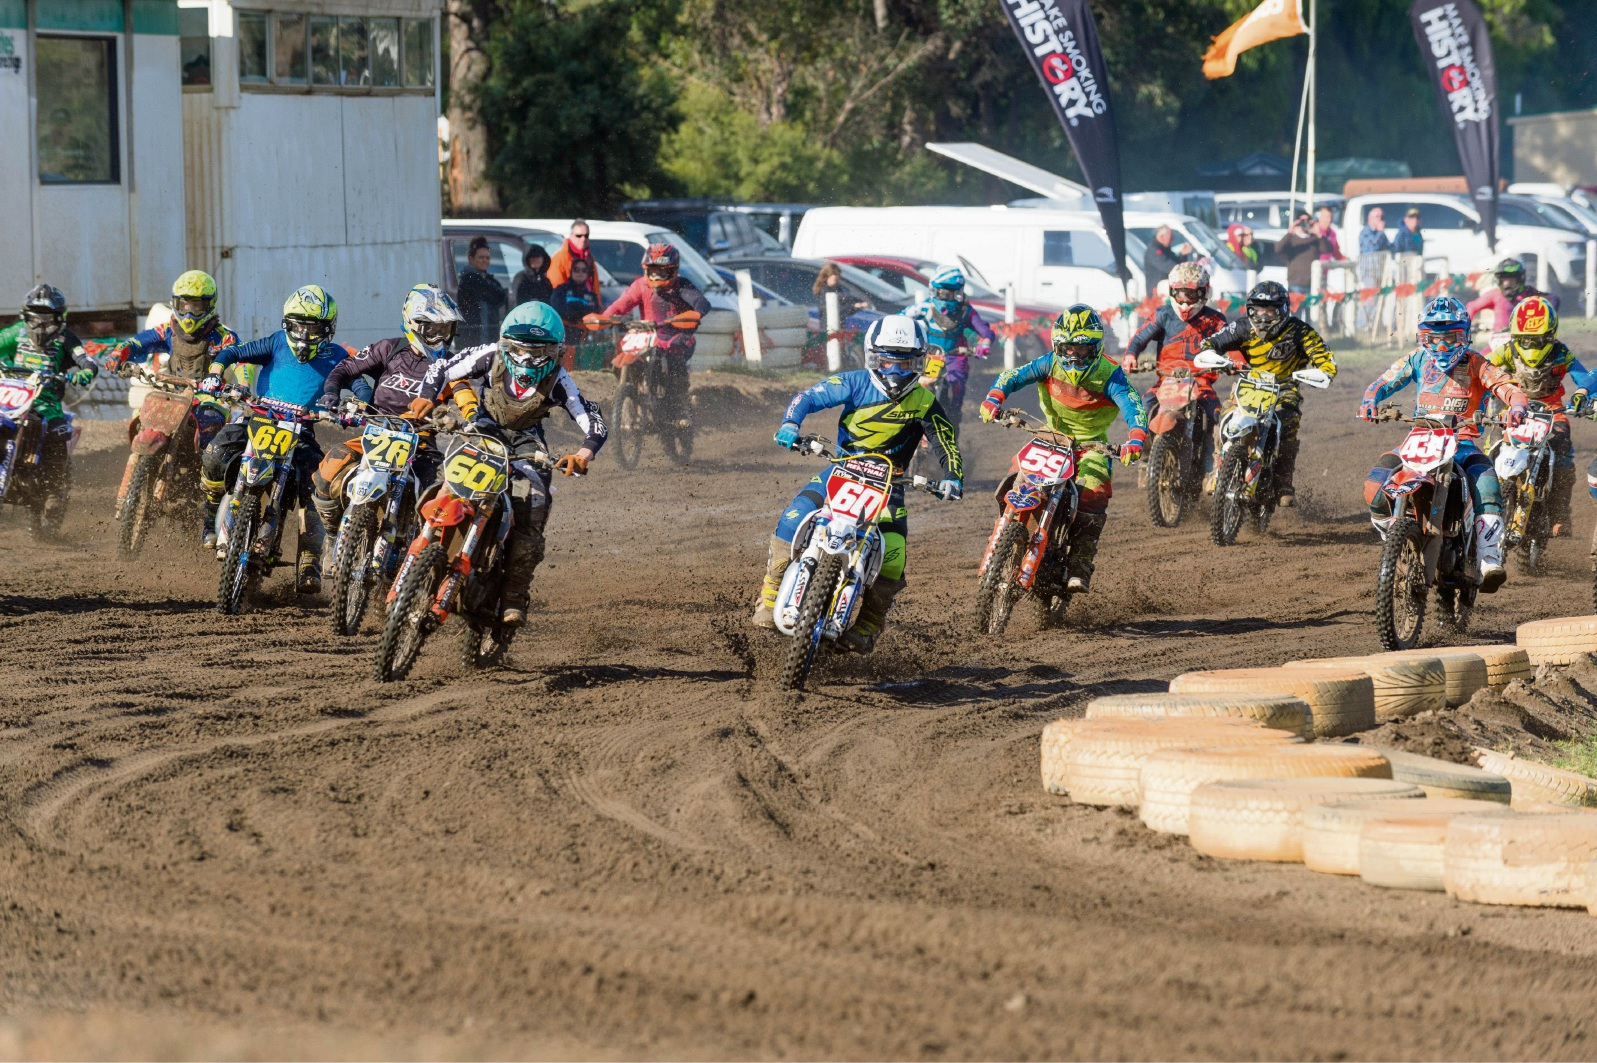 Juniors on the track at round two of the Motocross State Championship. Picture: Gordon Pettigrew/True Spirit Photos